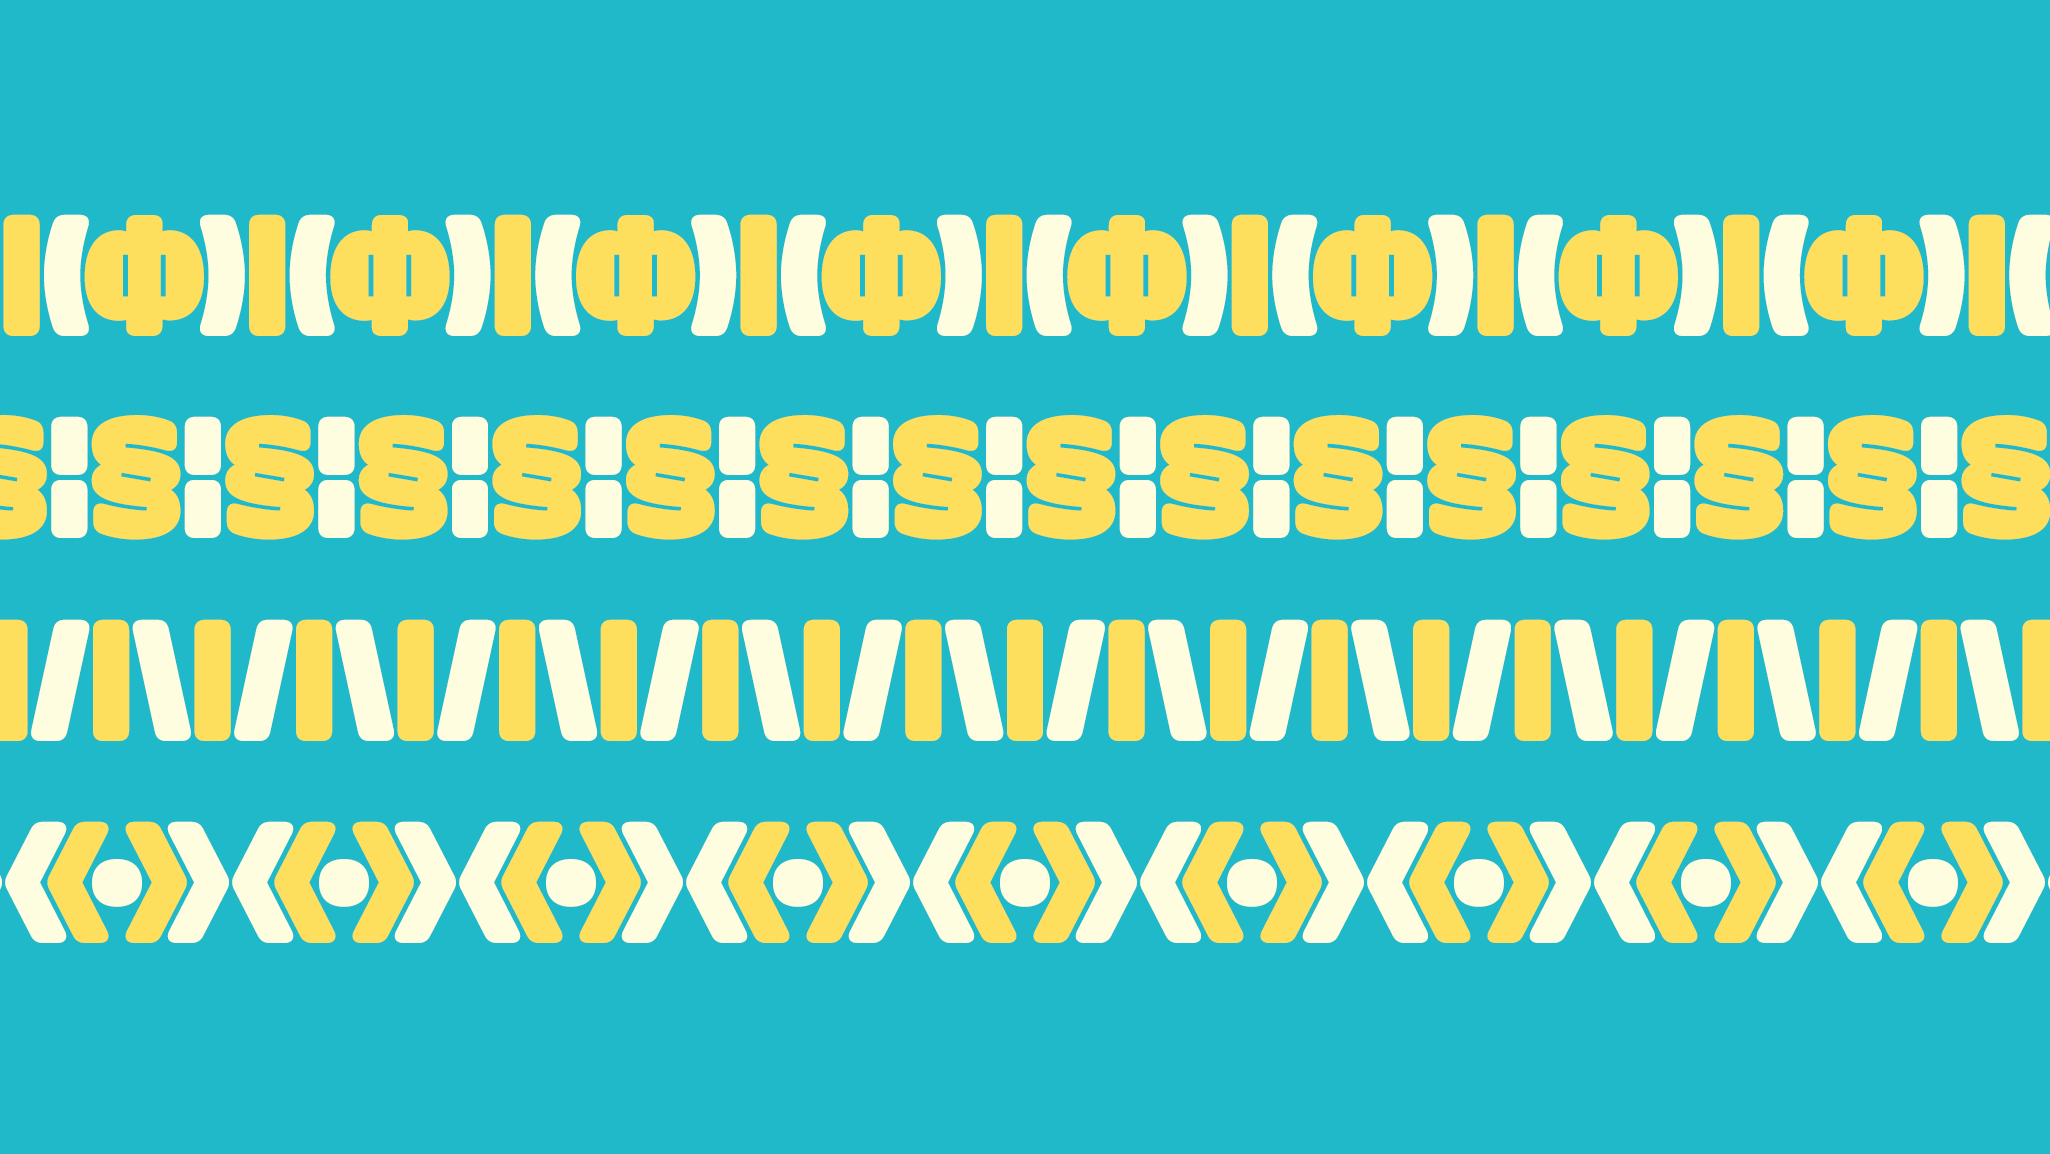 Doughy, a new sans typeface designed by Teddy Derkert. Available on www.typeverything.com